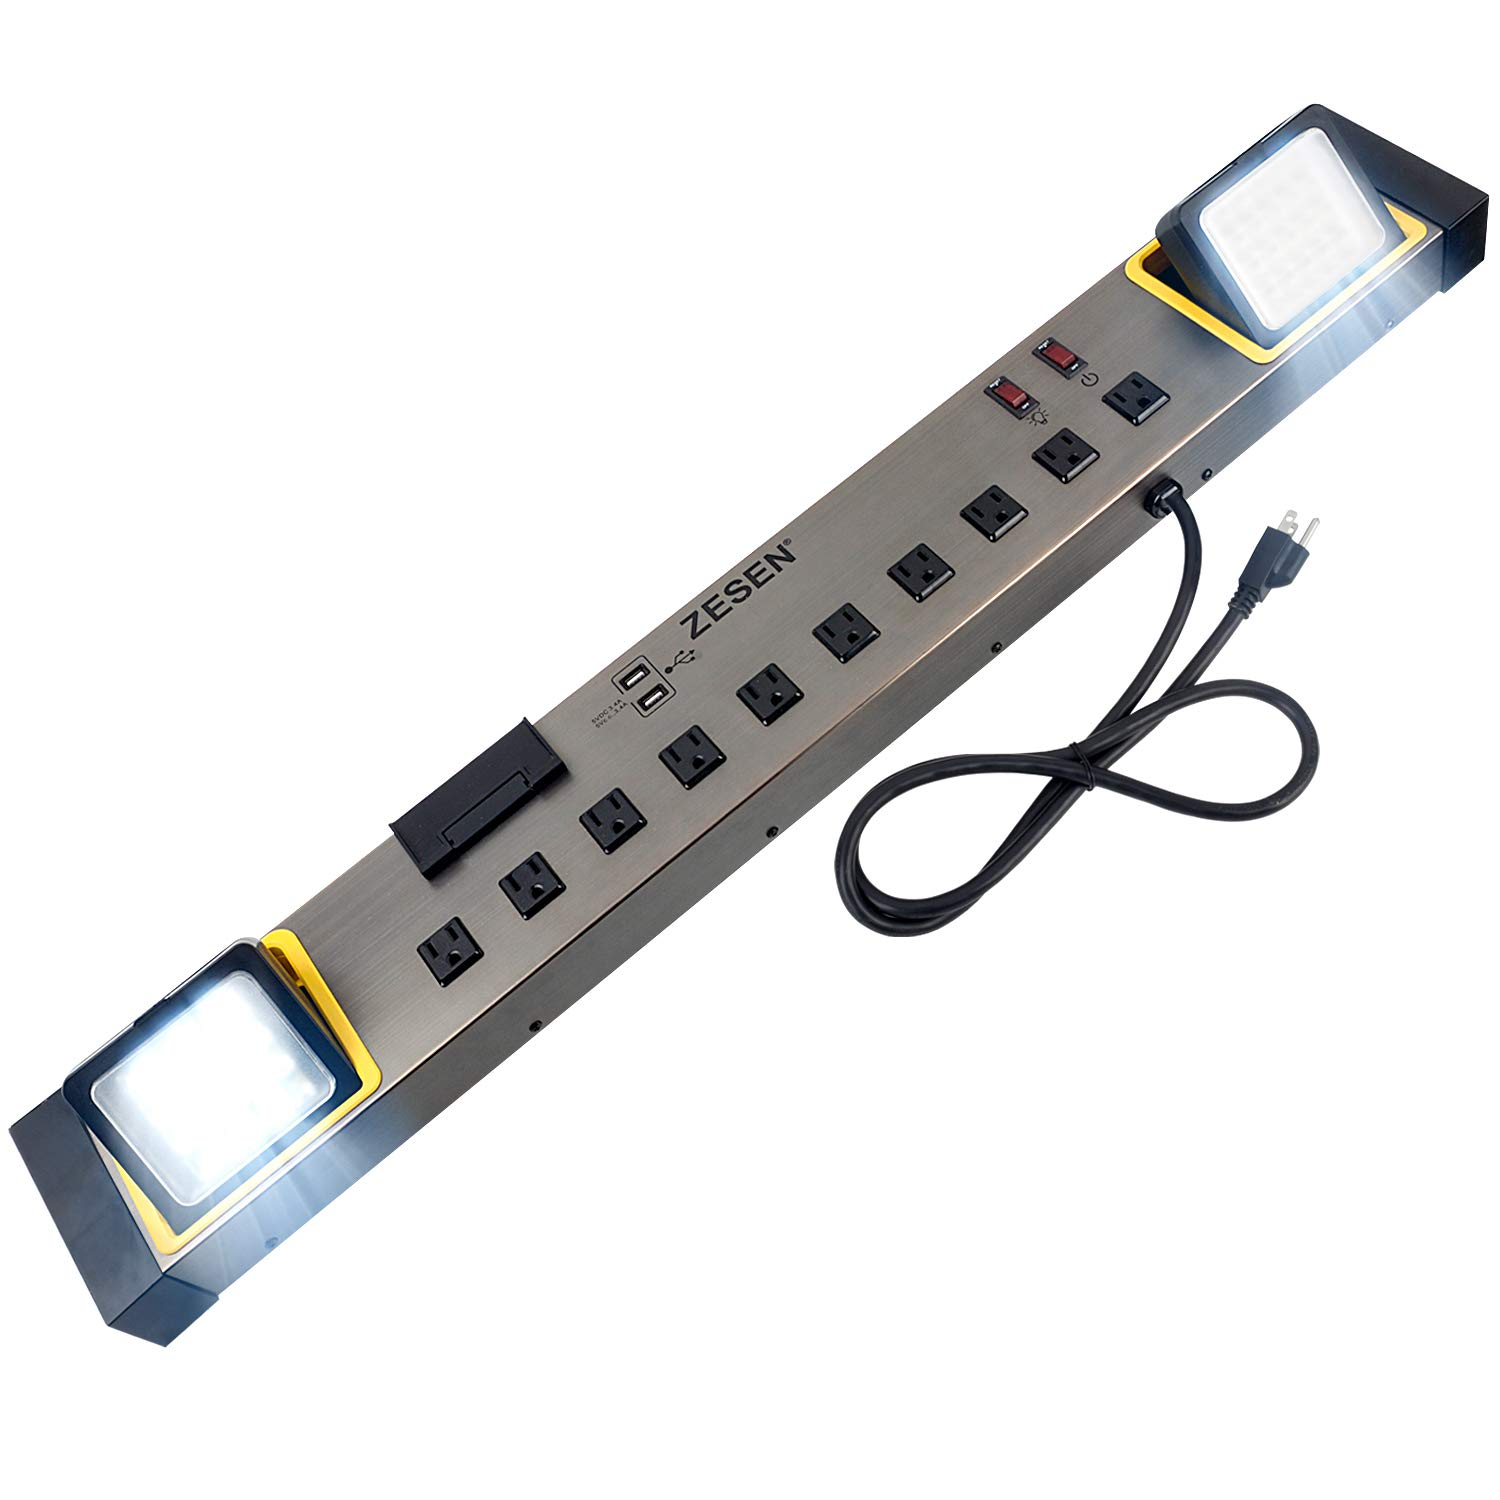 ZESEN 10-Outlet Power Strip with LED Worklight Surge Protector 4ft Cord with Dual Smart USB, Workshop/Garage/Office/Home, ETL Listed